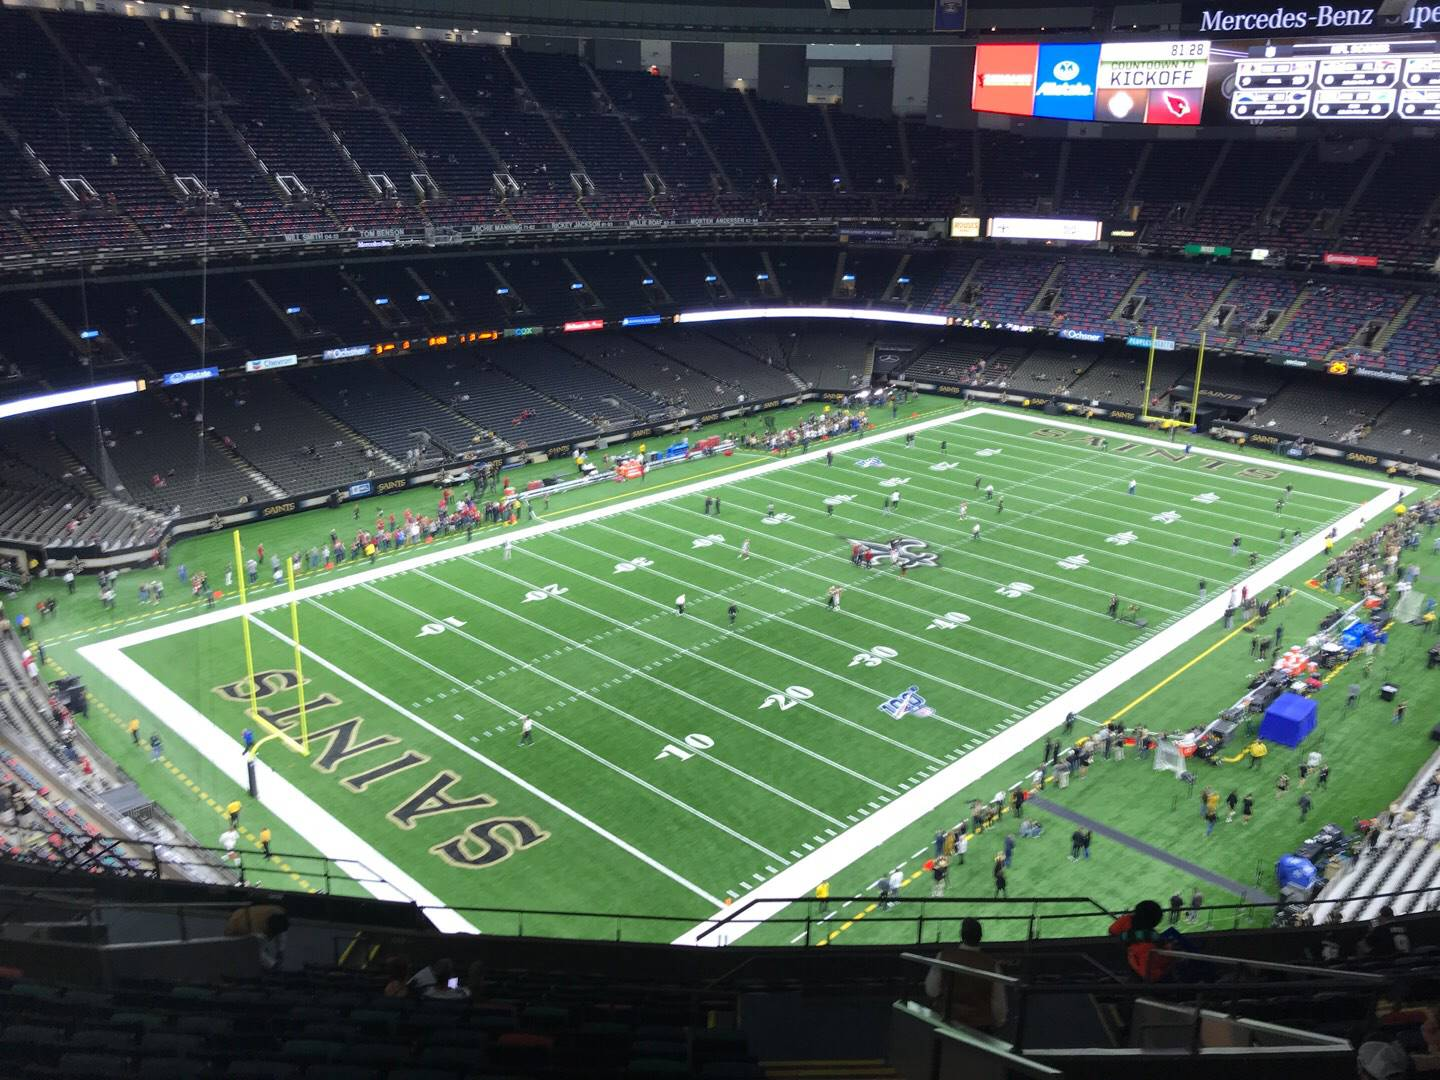 Mercedes-Benz Superdome Section 648 Row 18 Seat 2